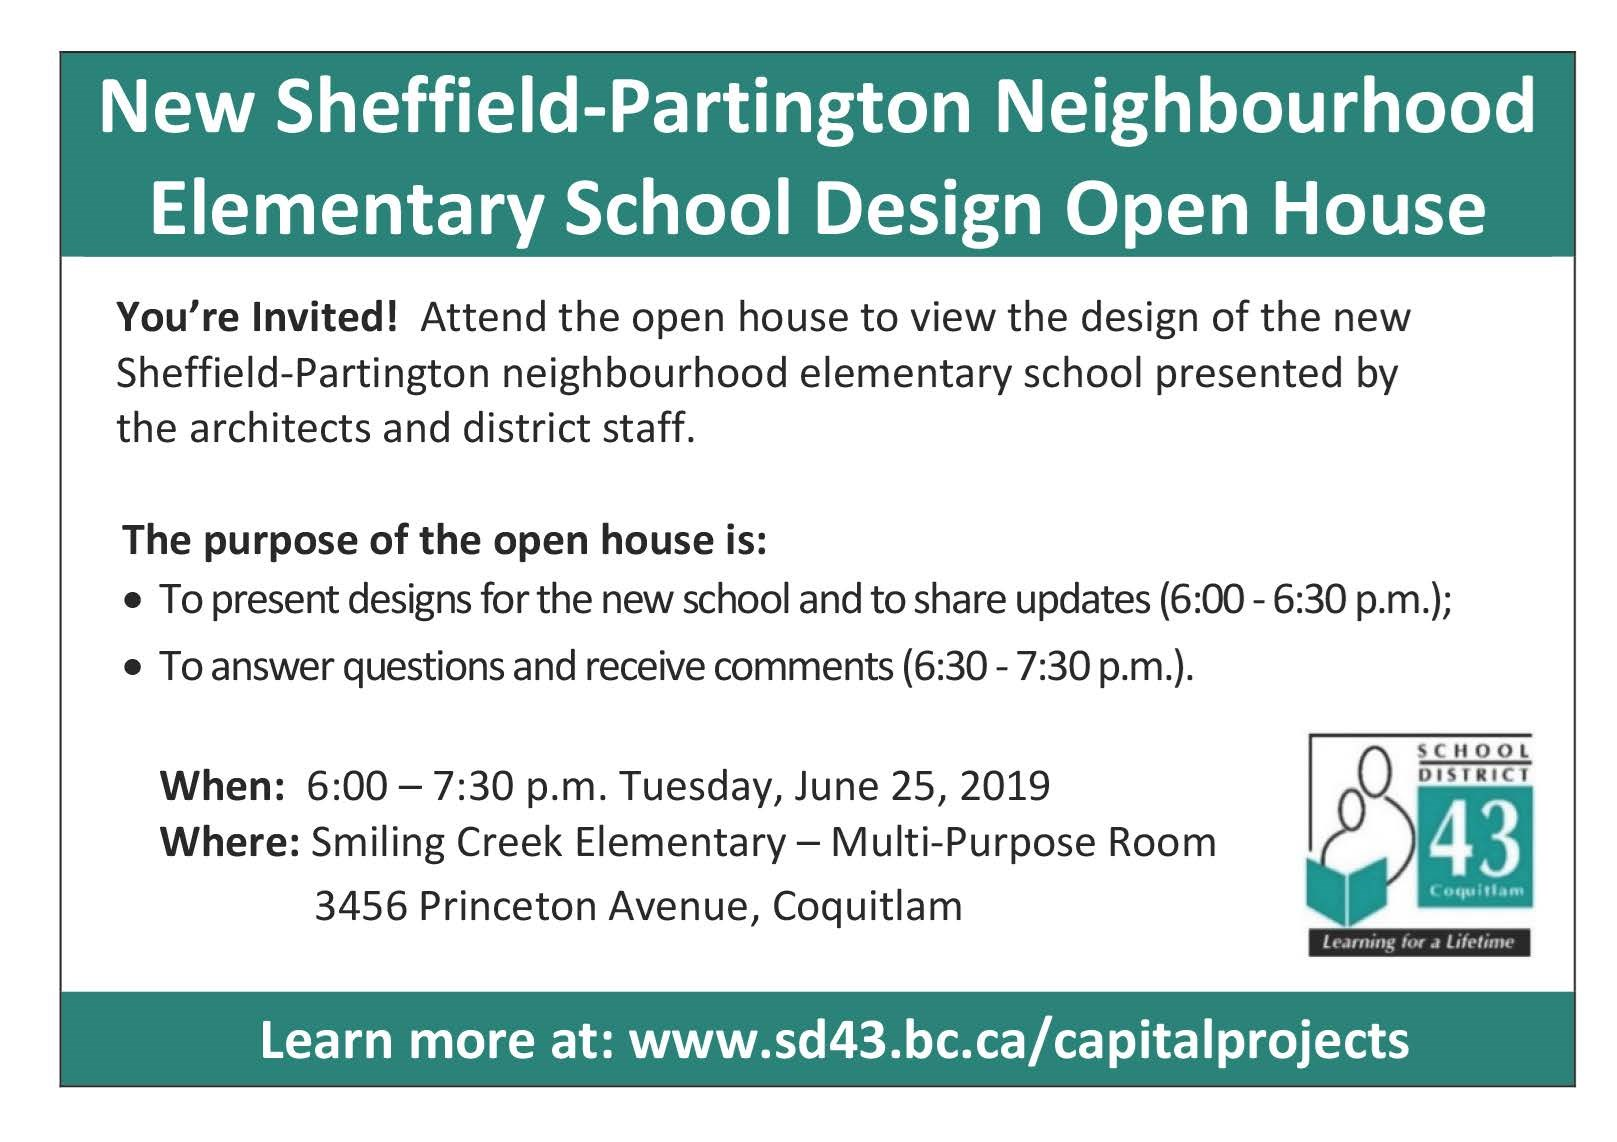 Attend the Open House to view the design of the new Sheffield-Partington Neighborhood Elementary School!